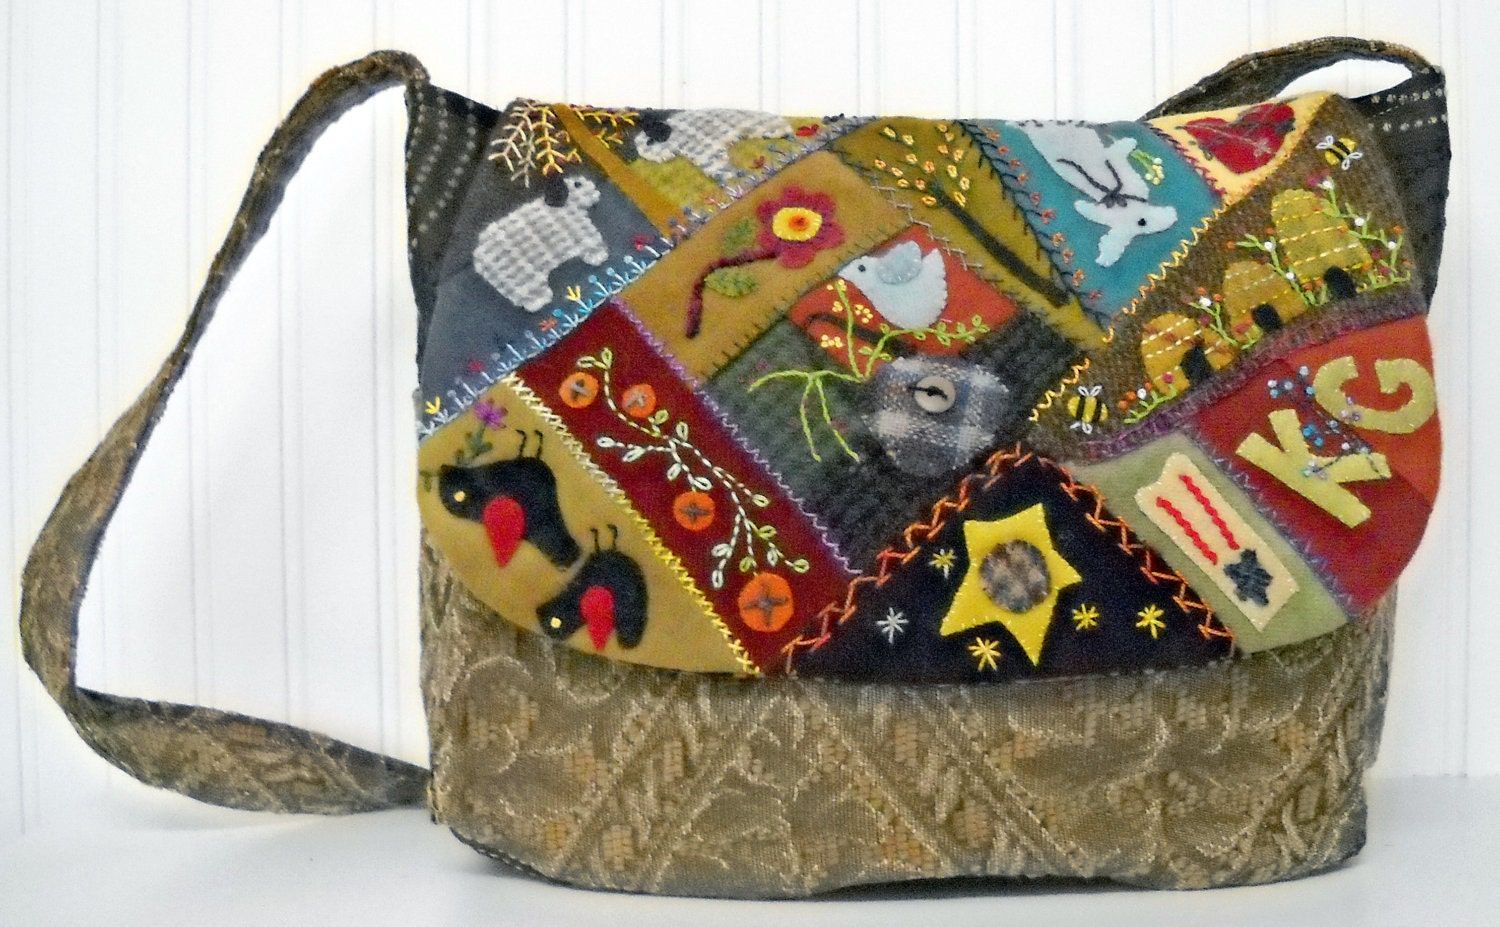 Quilting Patterns For Bags : Day Tripper Purse and Travel Bag pattern